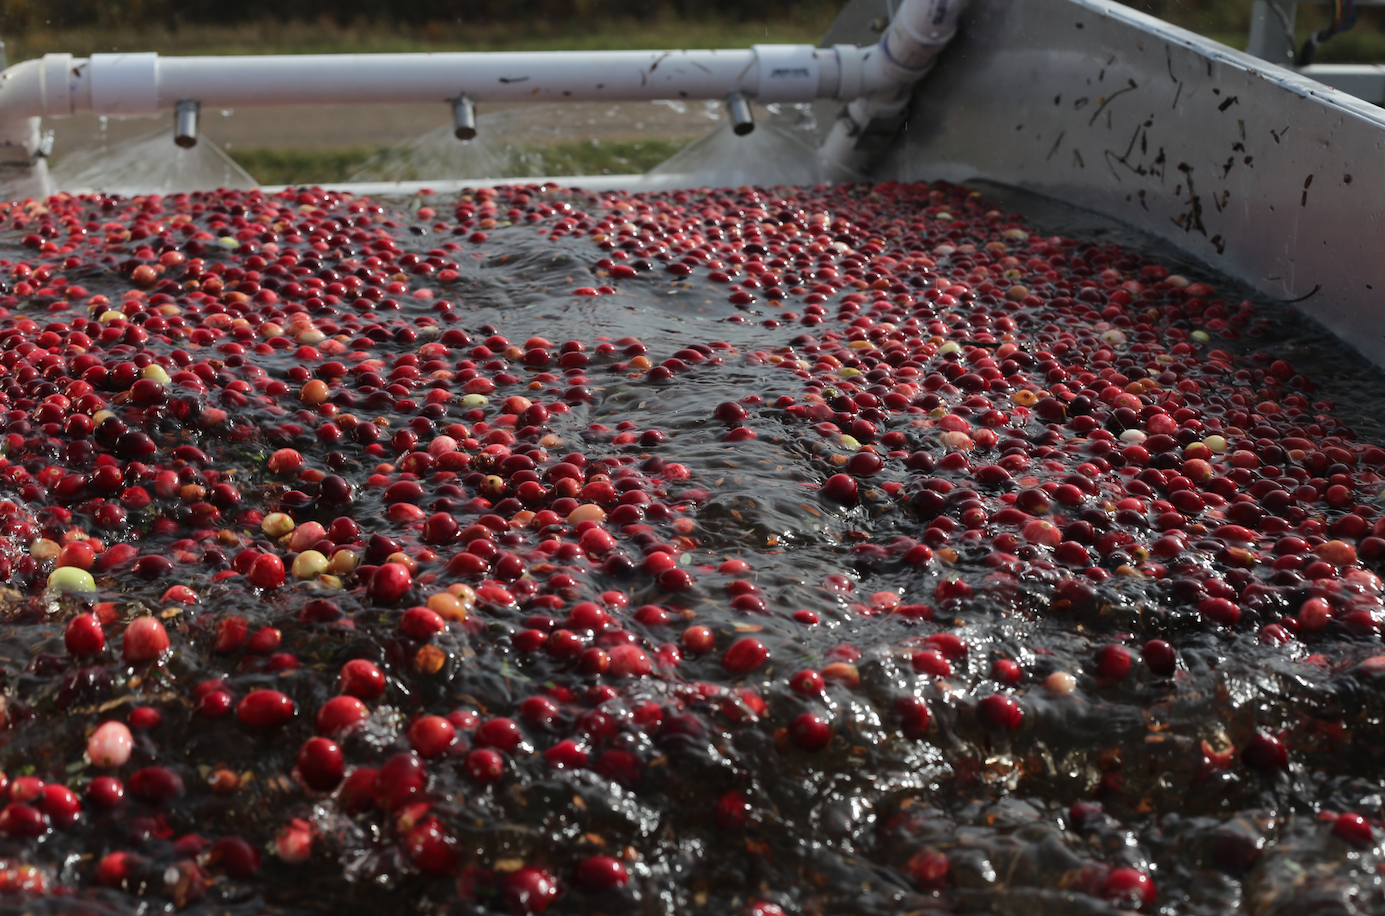 The berries are sprayed as they float off to the semi truck